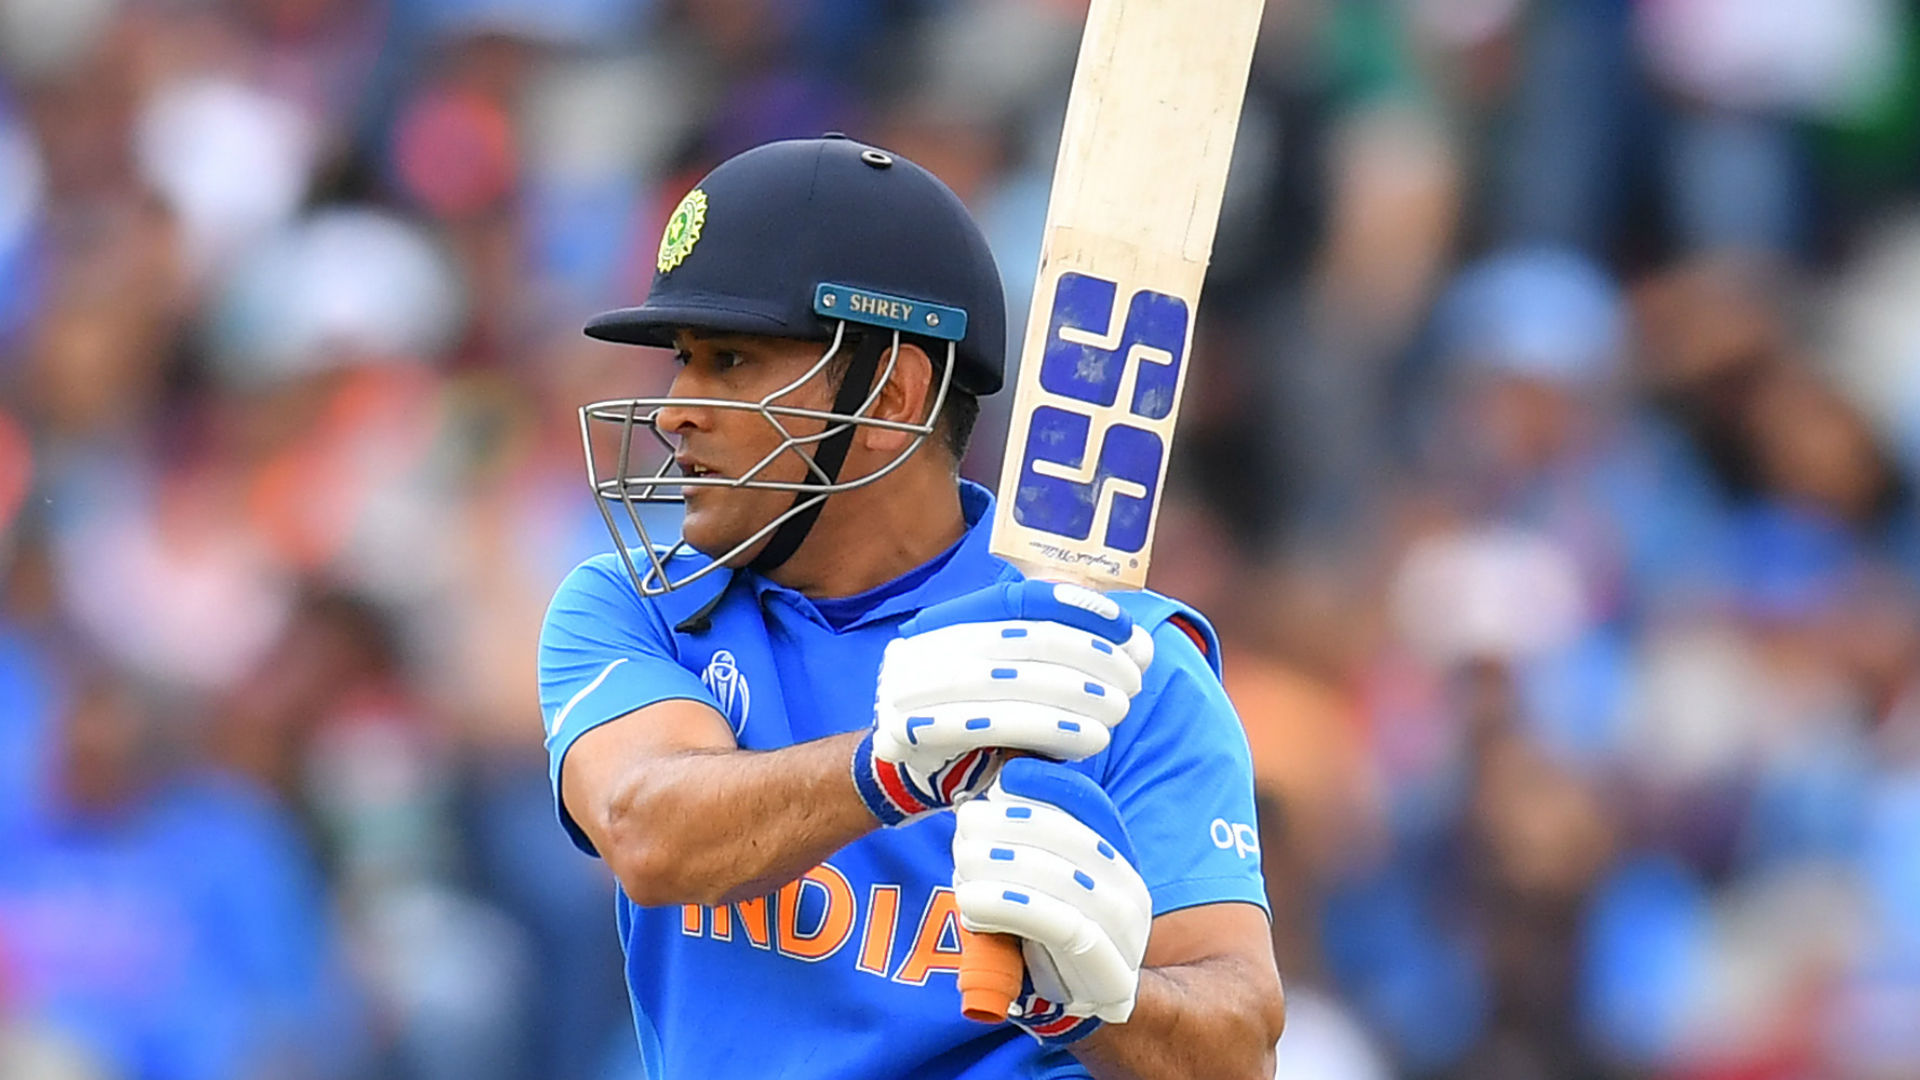 After helping India reach the World Cup semi-finals, MS Dhoni will not be involved against West Indies on the tour of the Caribbean.